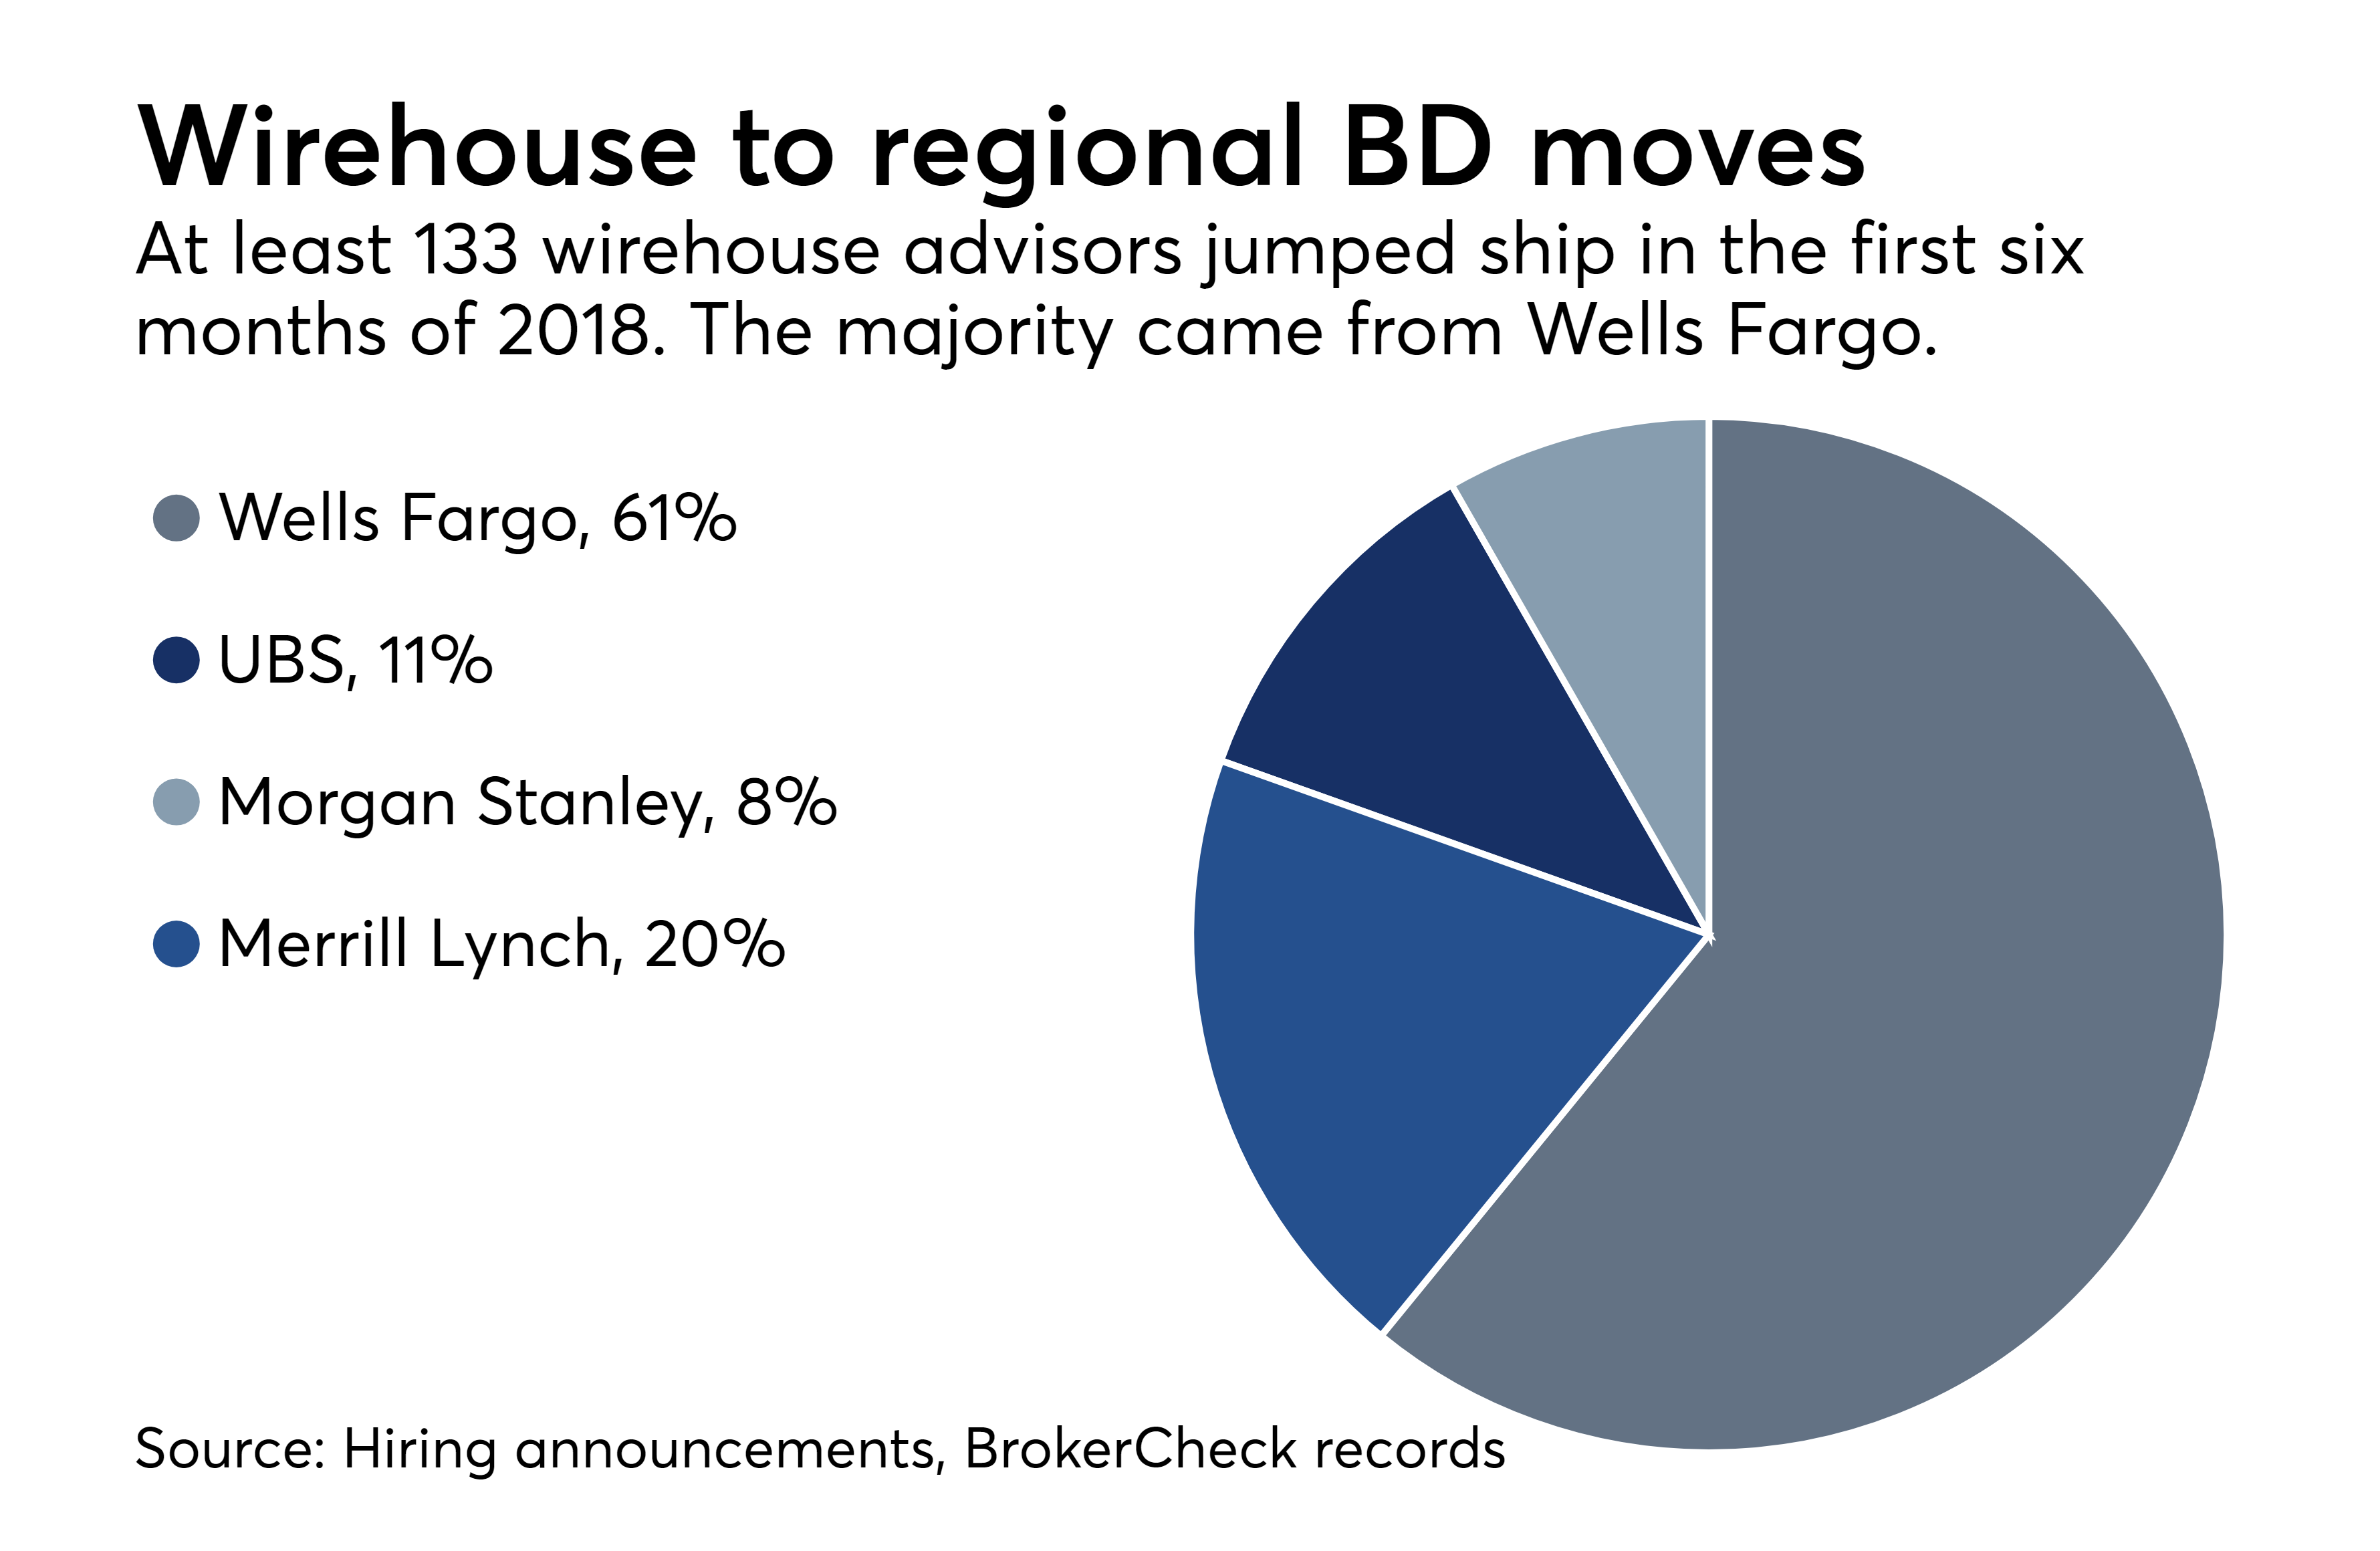 ows-07-06-2018-wirehouse-to-regional-bd-recruiting-moves-pie-chart.png